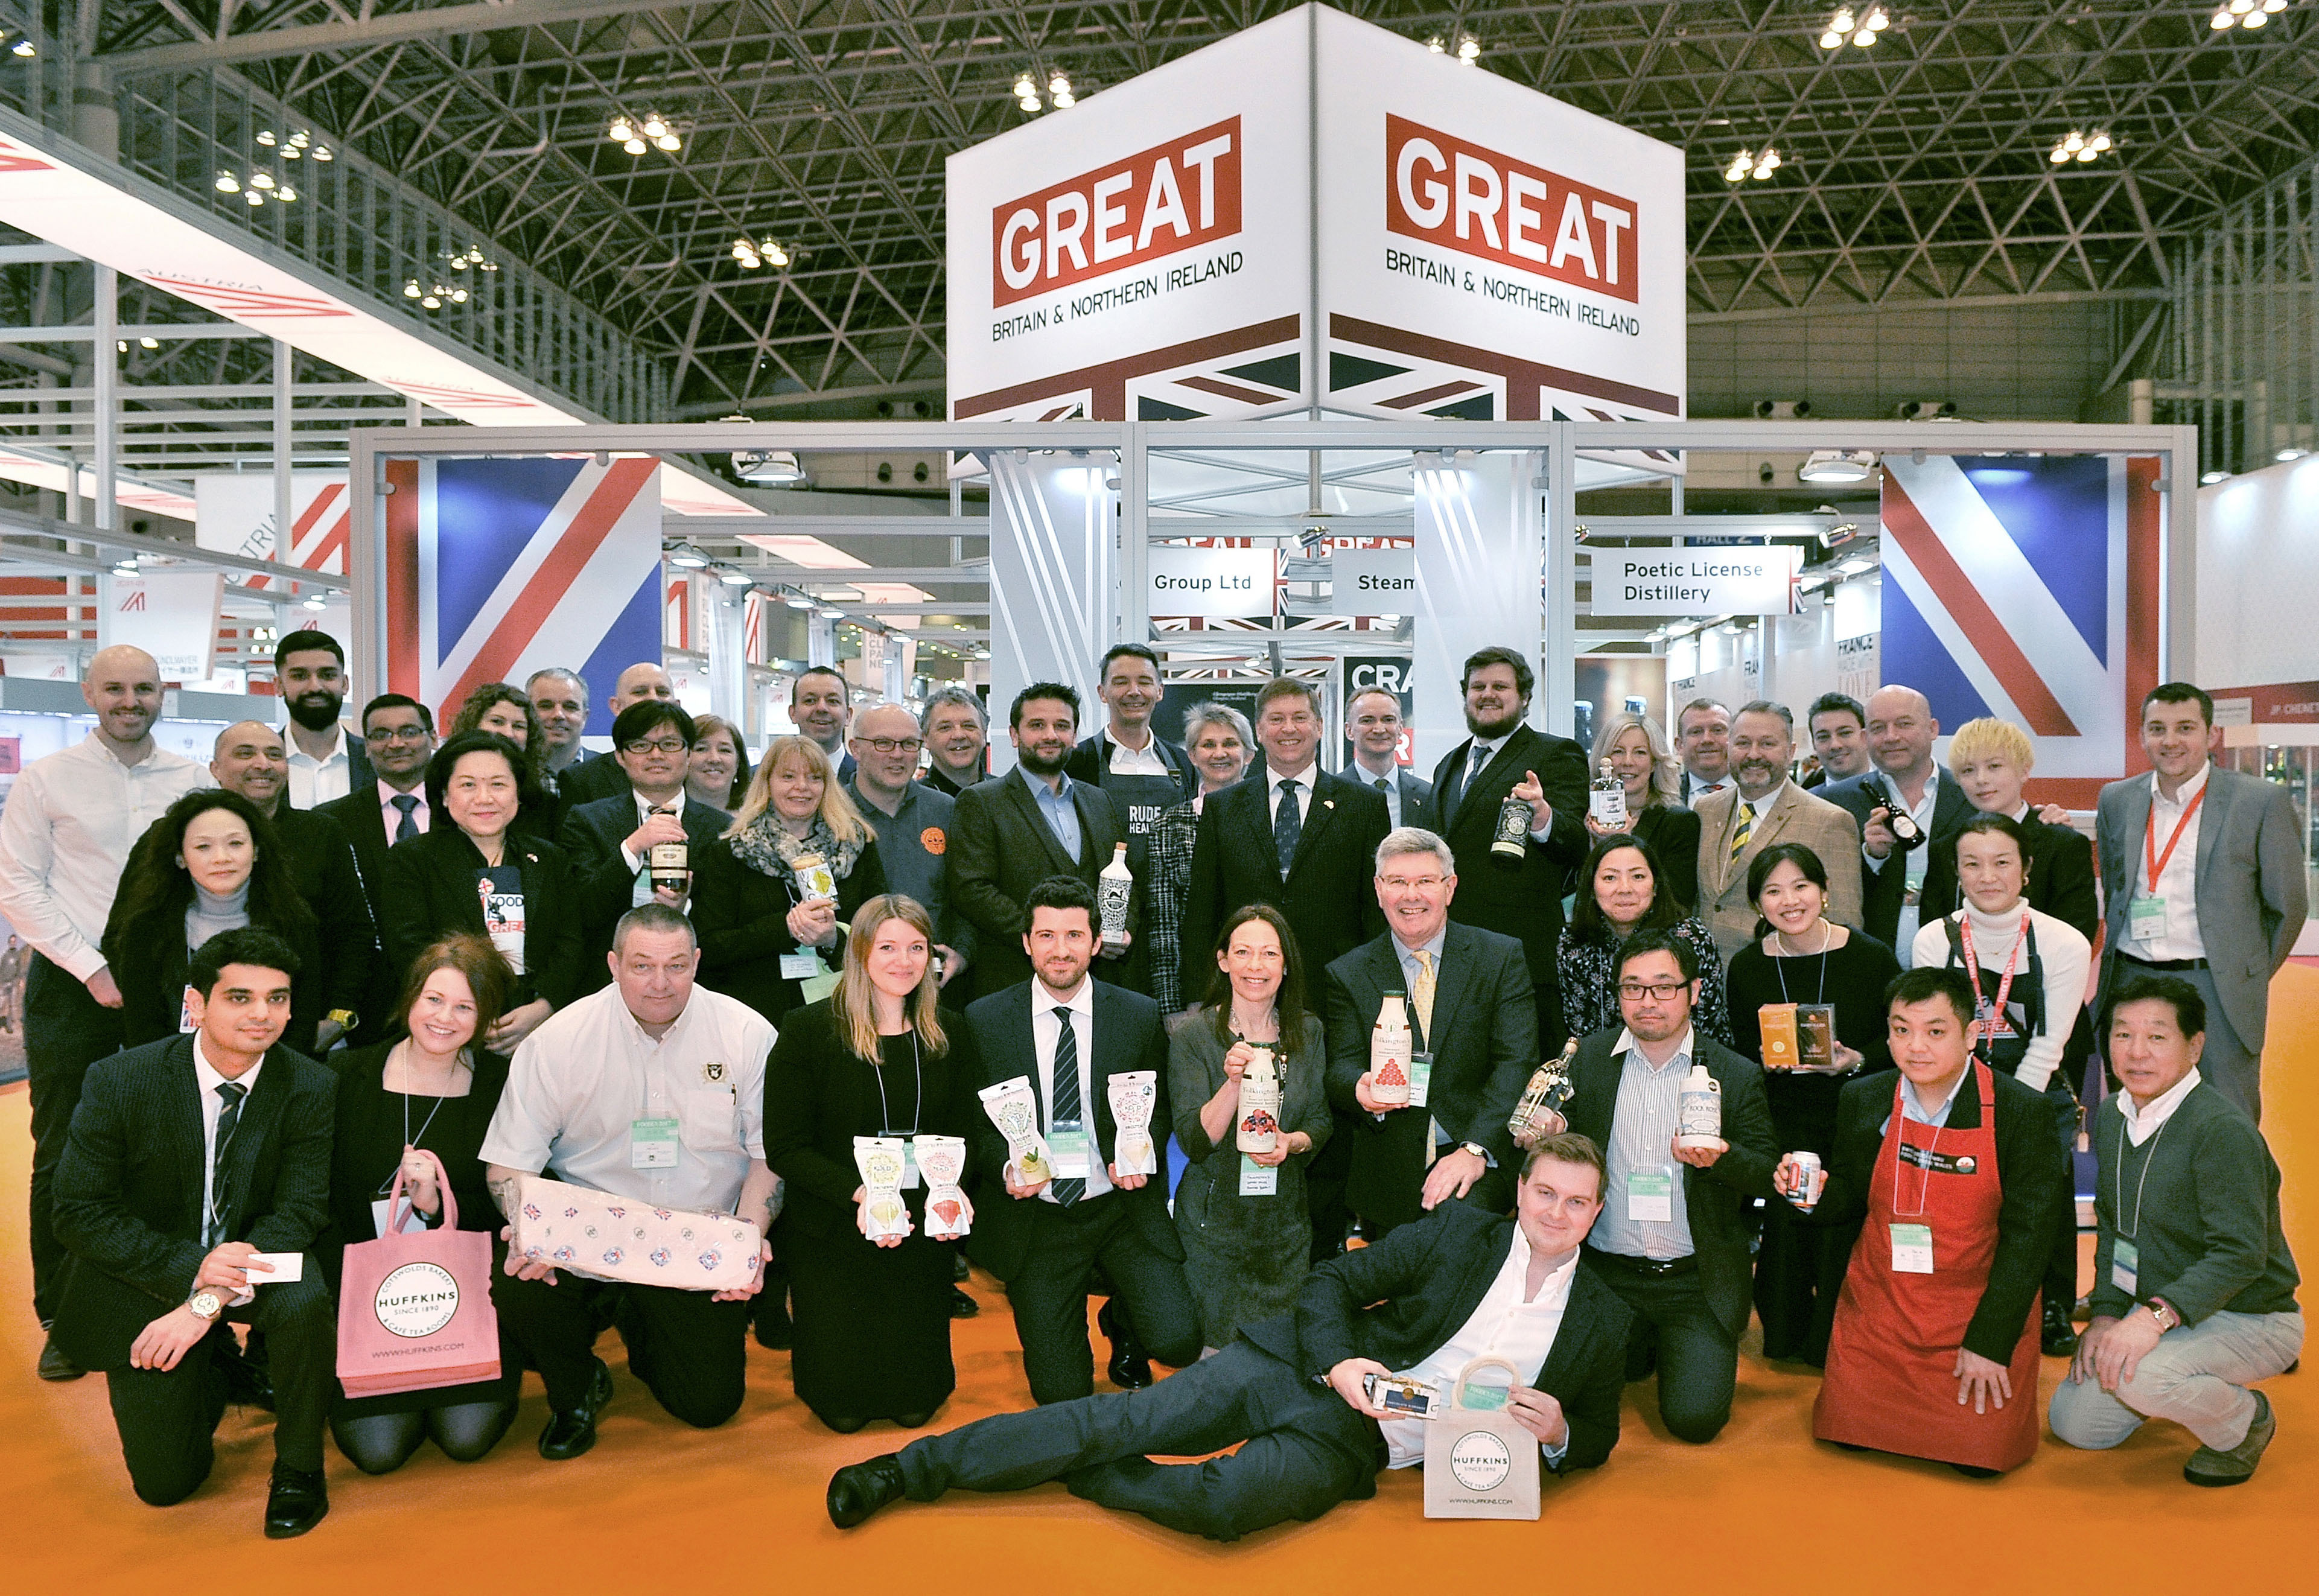 Attendees and exhibitors, including British Ambassador Paul Madden, CMG, and his wife Sarah, pose in front of the Britain and Northern Ireland booth at the Foodex Japan 2017 opening ceremony at Makuhari Messe in Chiba Prefecture on March 7. | YOSHIAKI MIURA